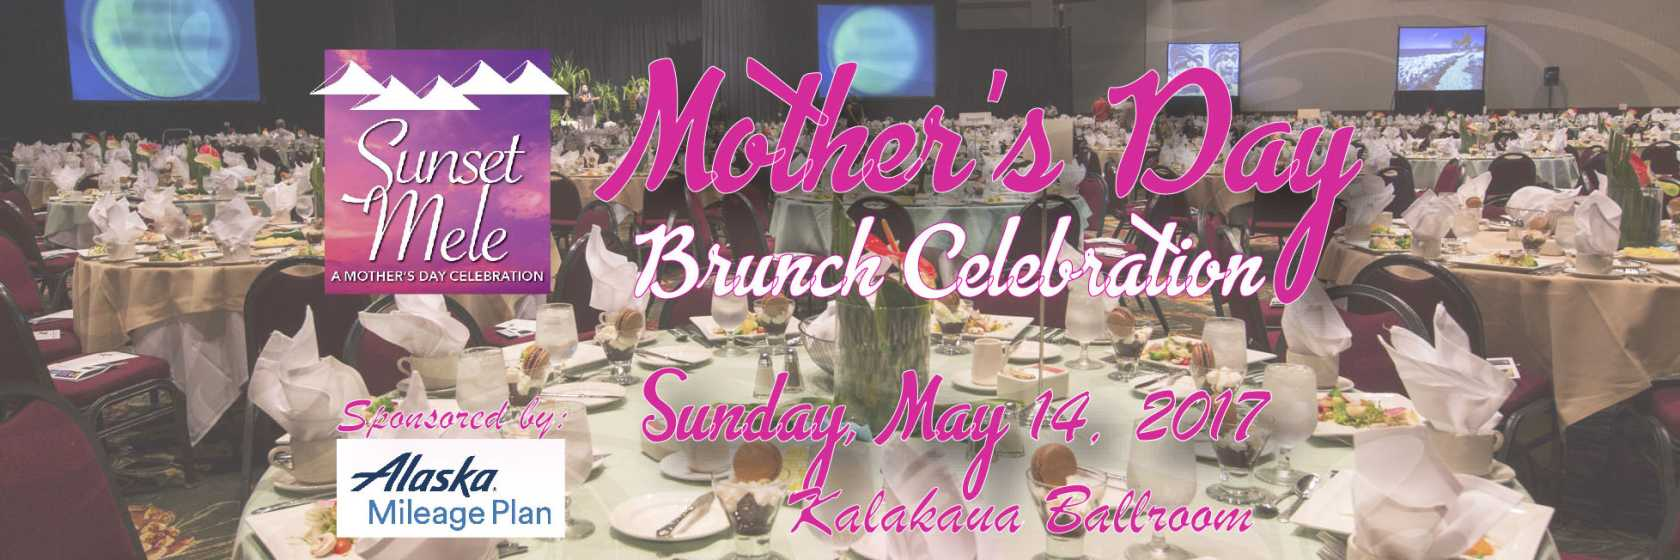 Video: Mother's Day Brunch Celebration at the Hawaii Convention Center